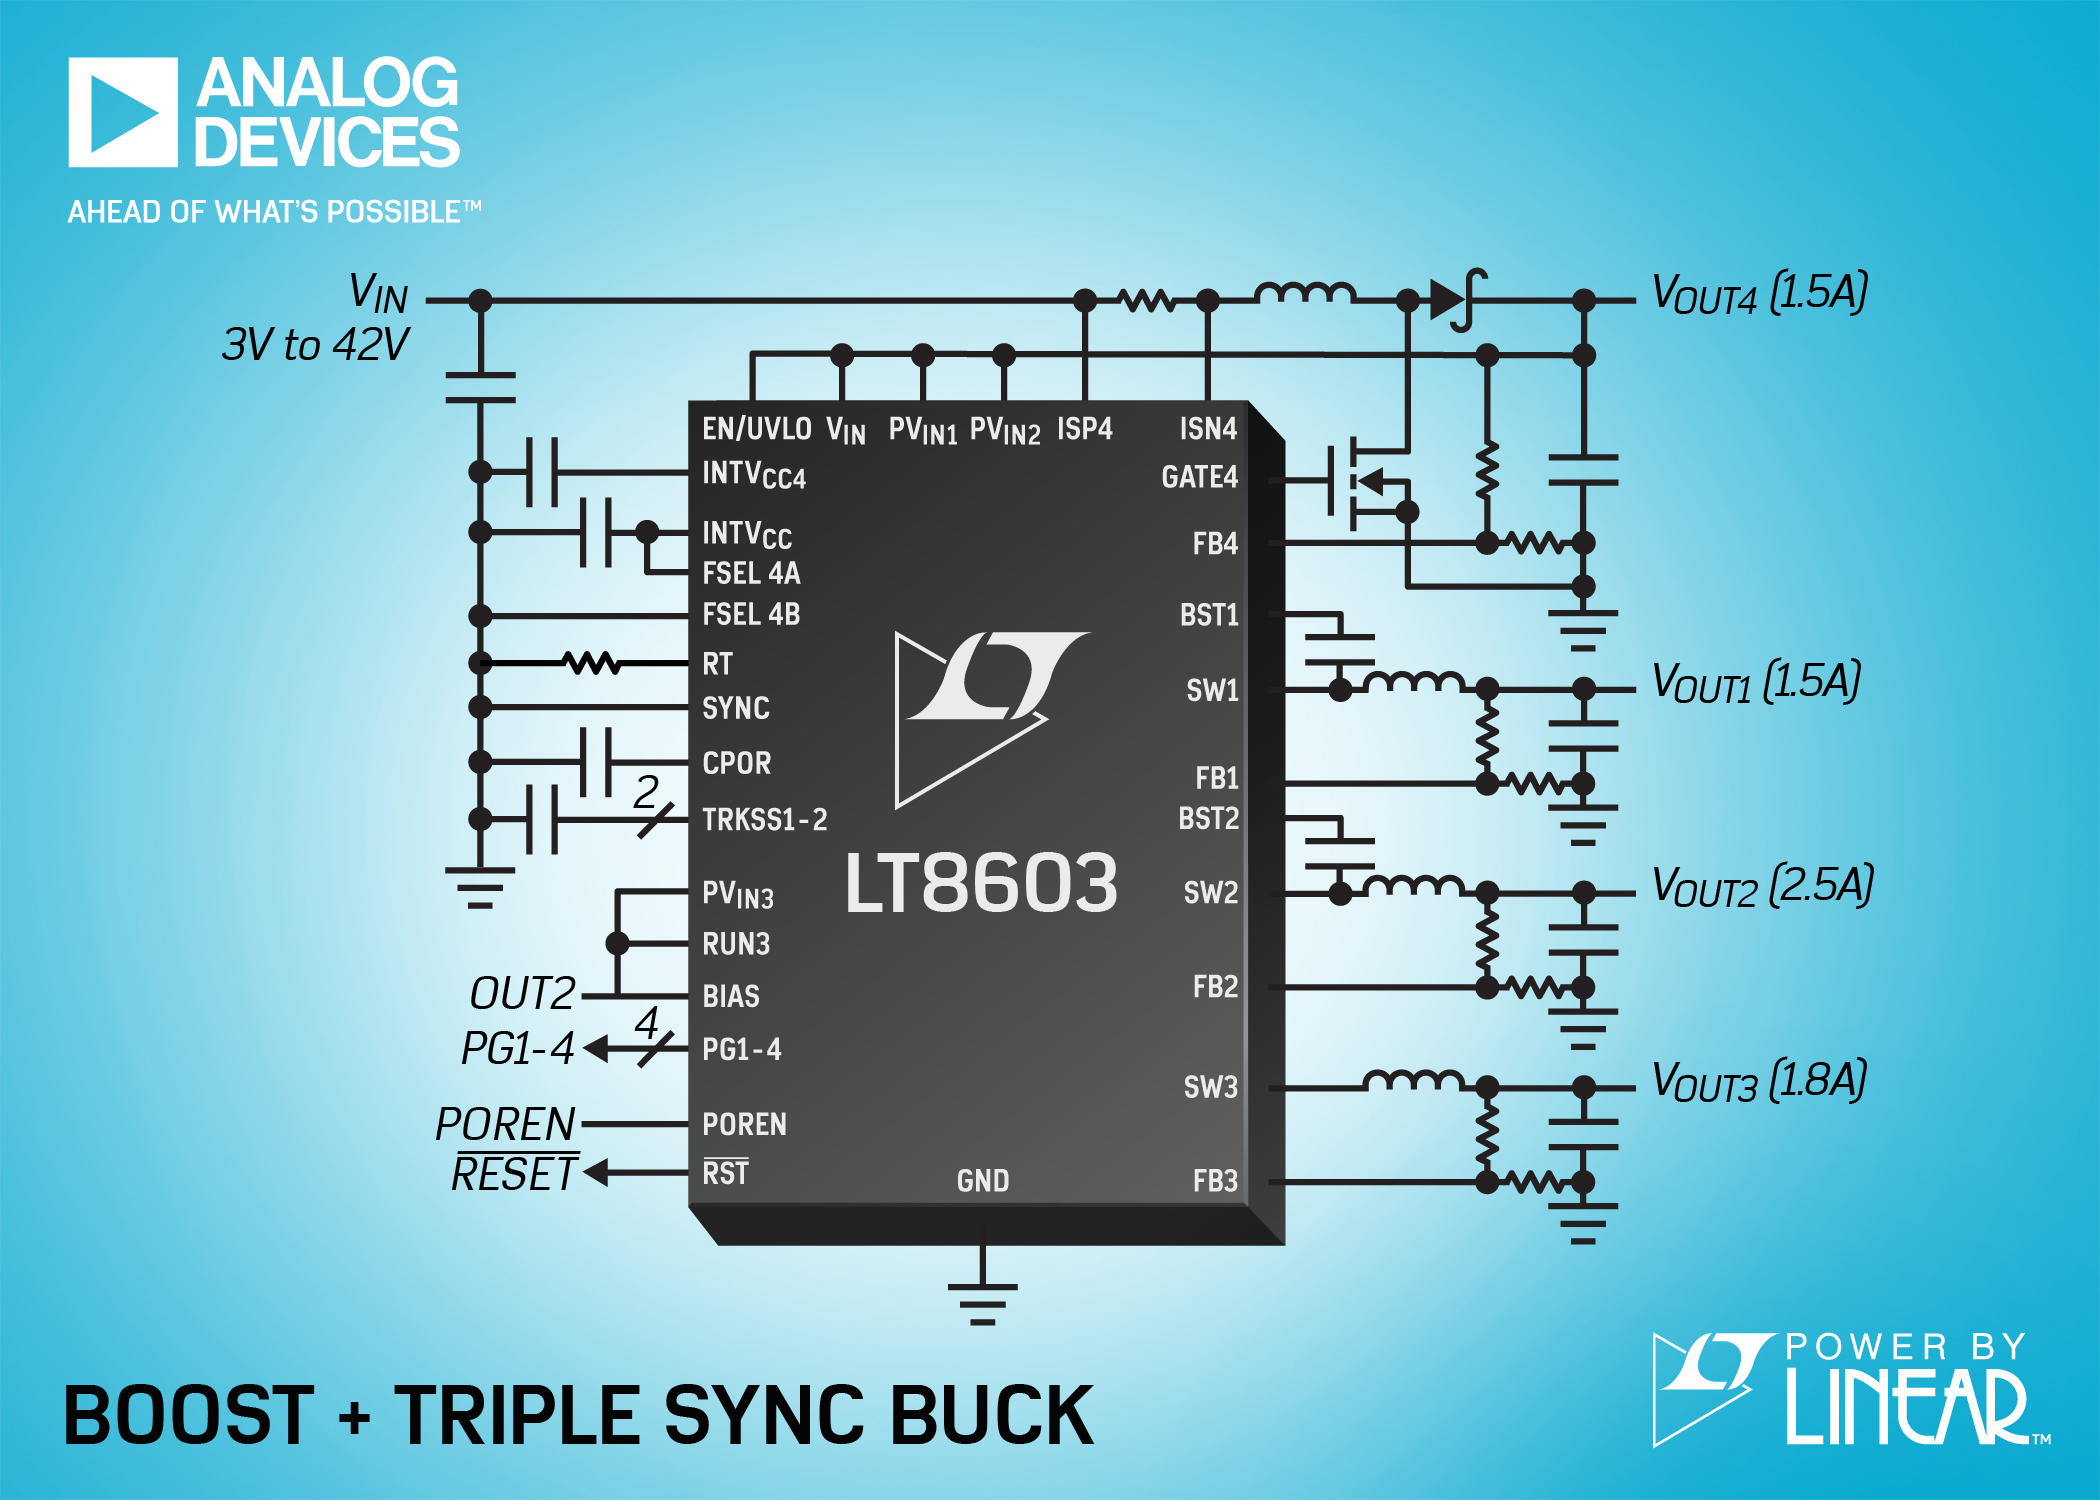 42V Quad Output, Triple Monolithic Synchronous Buck Converter & Boost Controller Operates from 3V to 42V Inputs